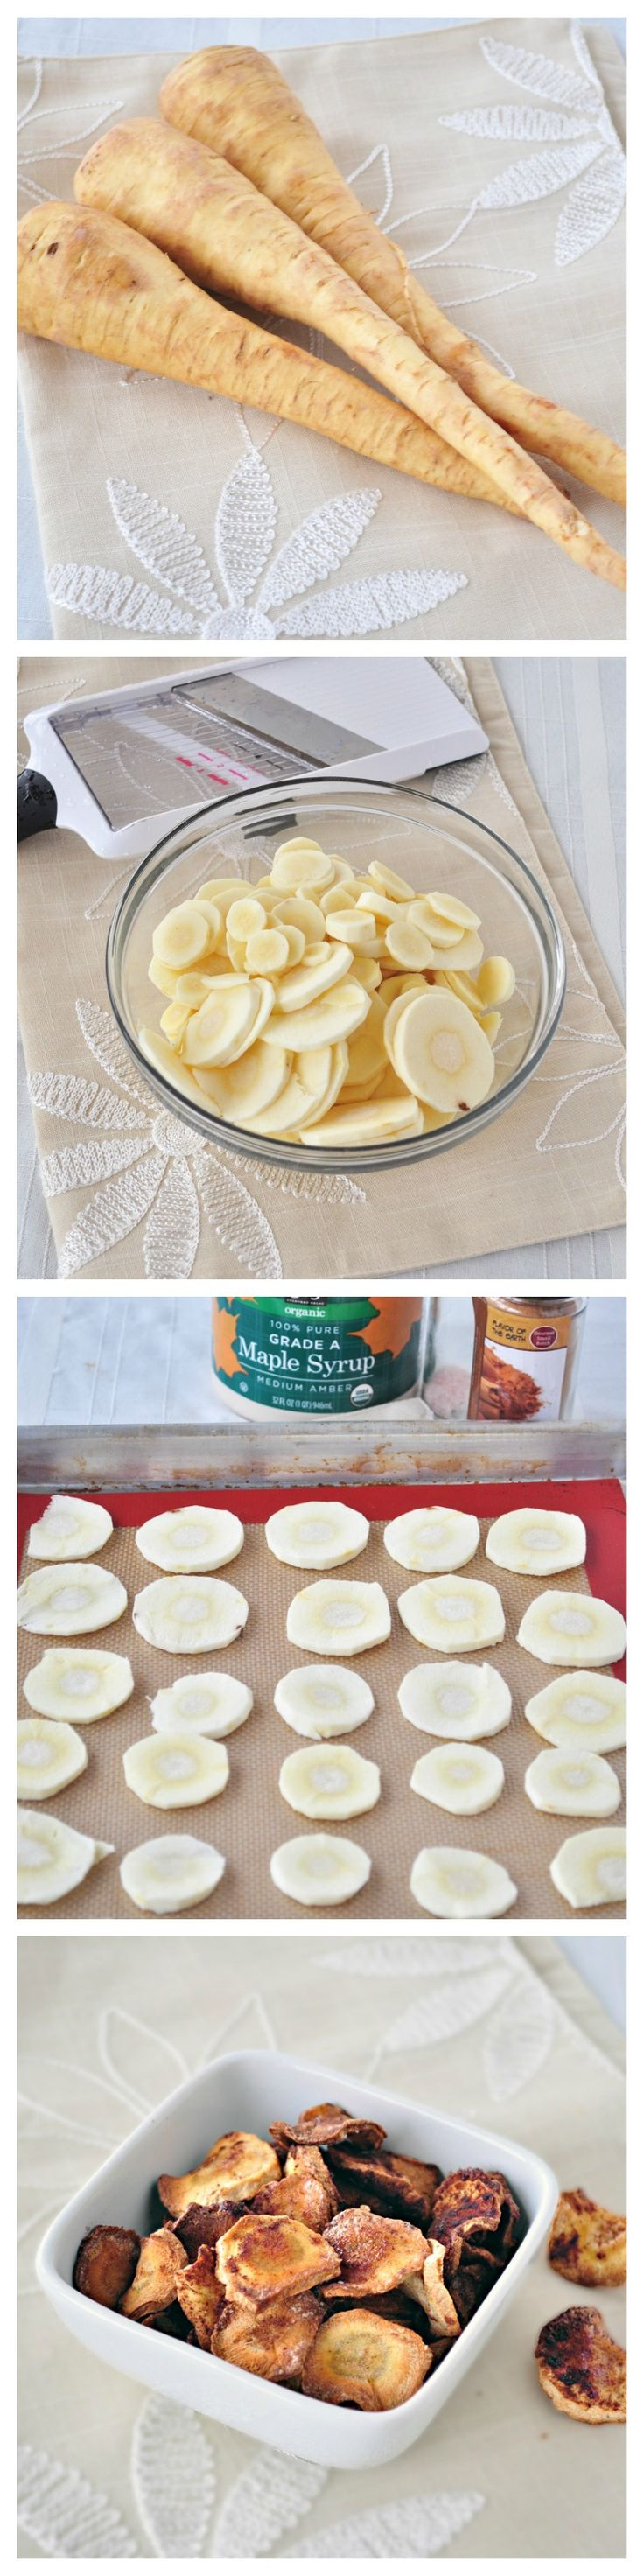 Maple Cinnamon Parsnip Chips.  A healthy and sweet snack your kids will love!  Mine ate the whole tray!  Only 4 simple ingredients!  #vegan #glutenfree #snacks